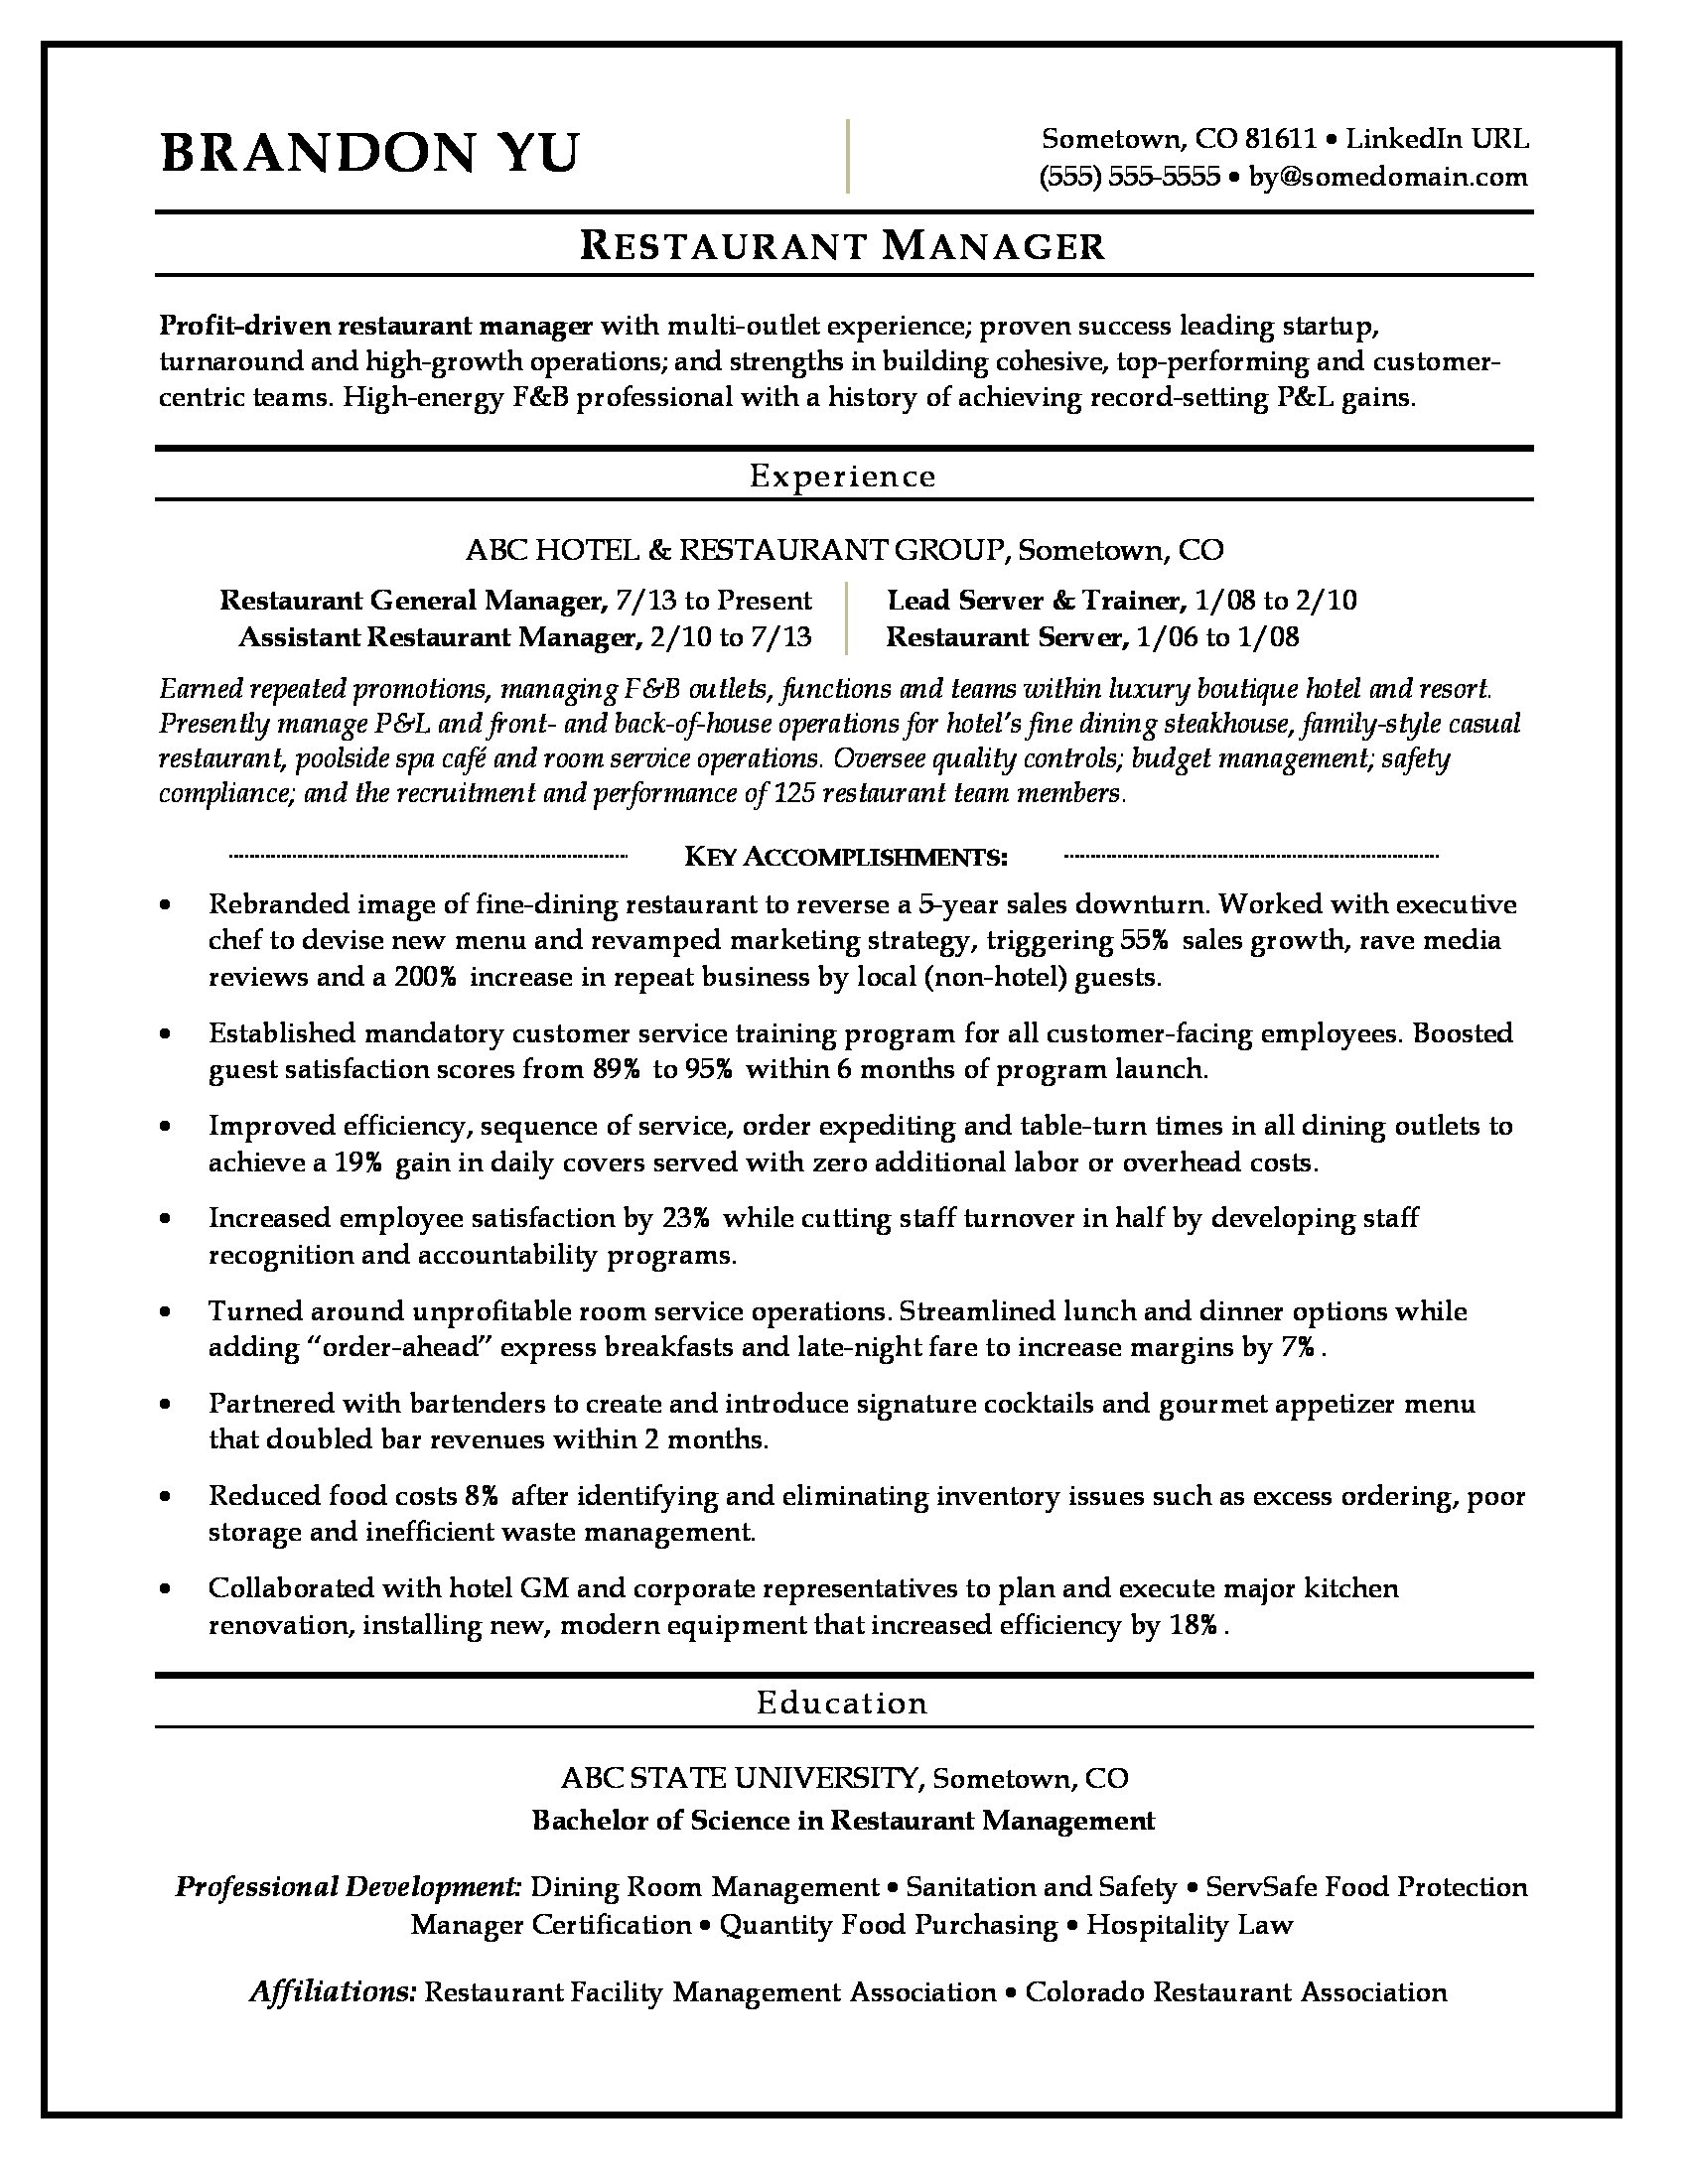 Charming Sample Resume For A Restaurant Manager  Manager Skills For Resume